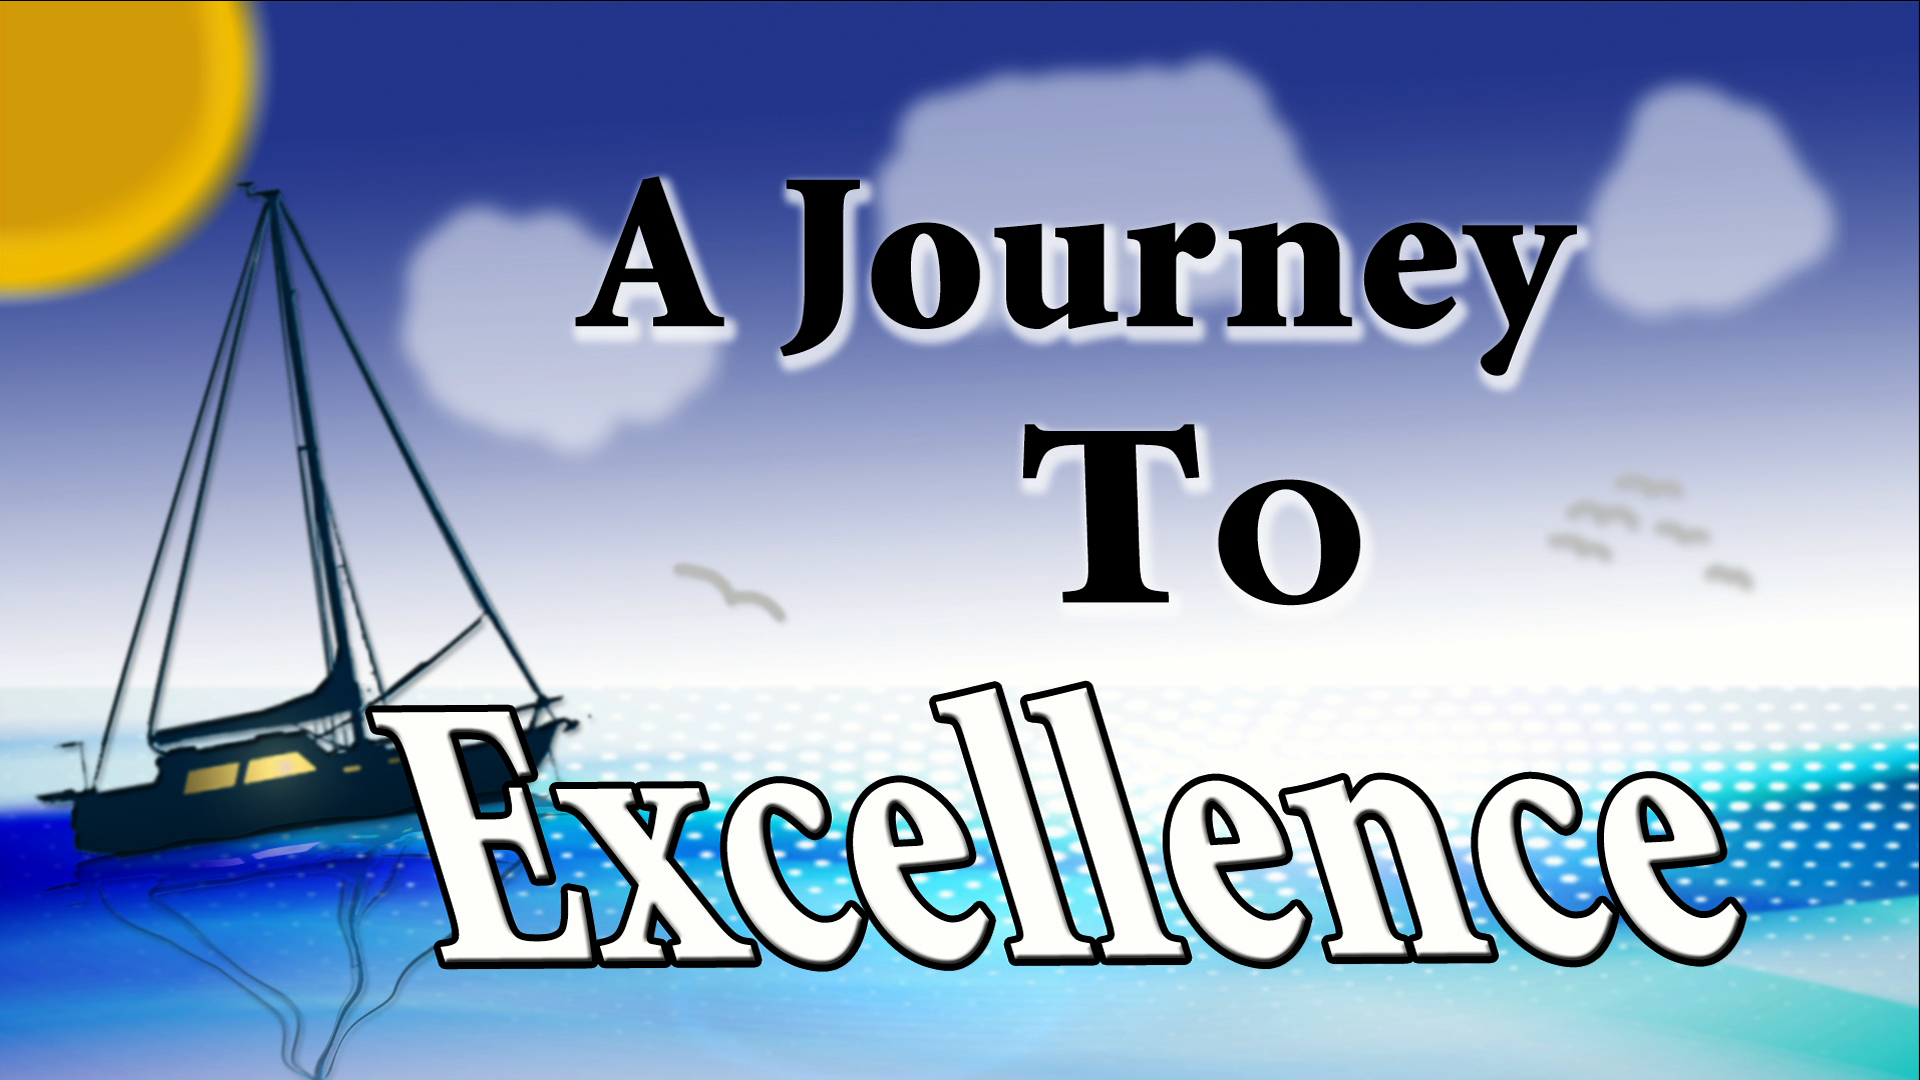 AJourneyToExcellence